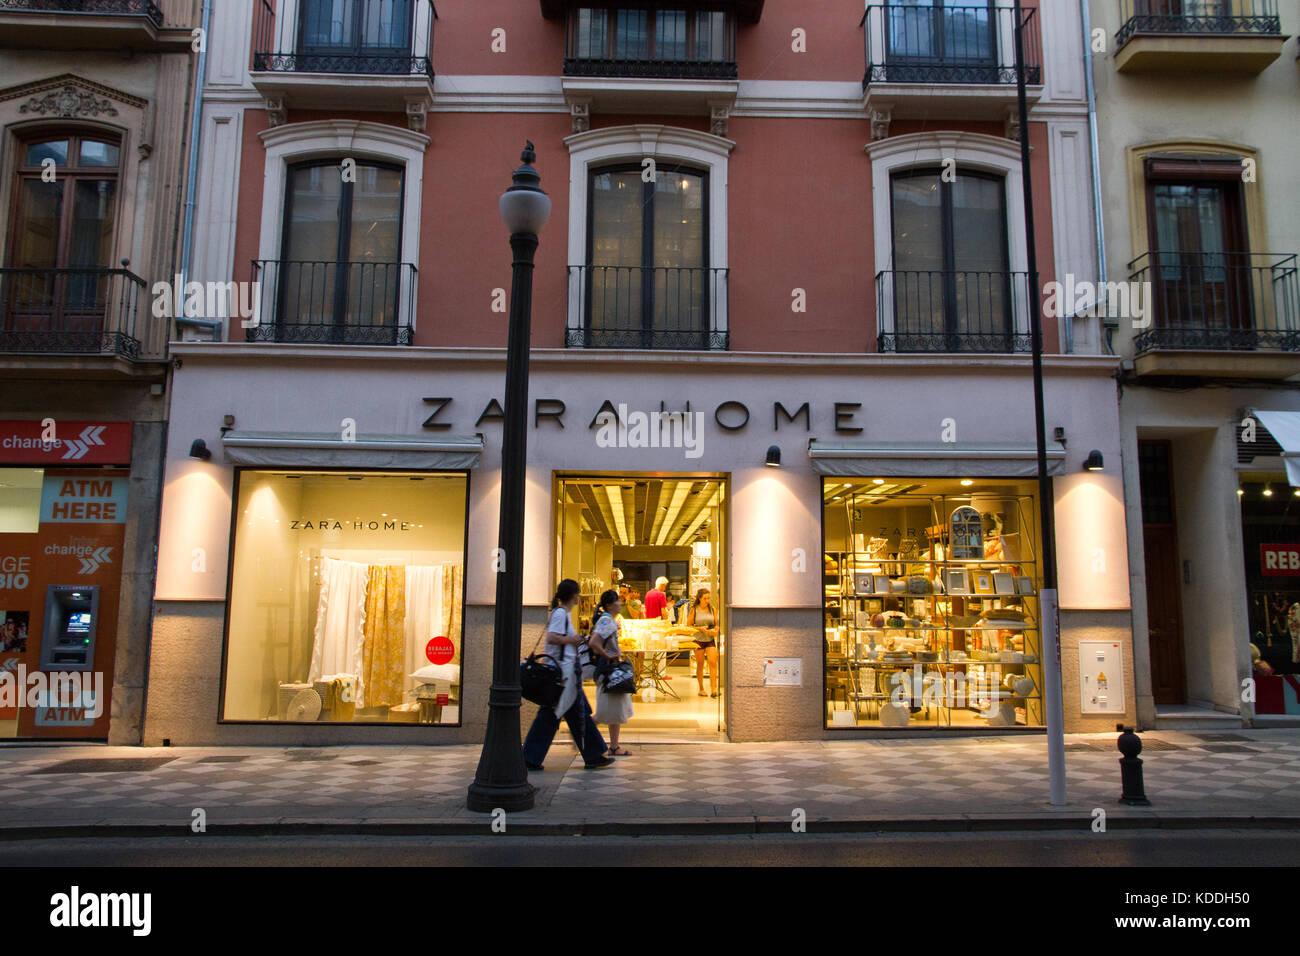 b36d4fd3 Zara Store Spain Stock Photos & Zara Store Spain Stock Images - Alamy